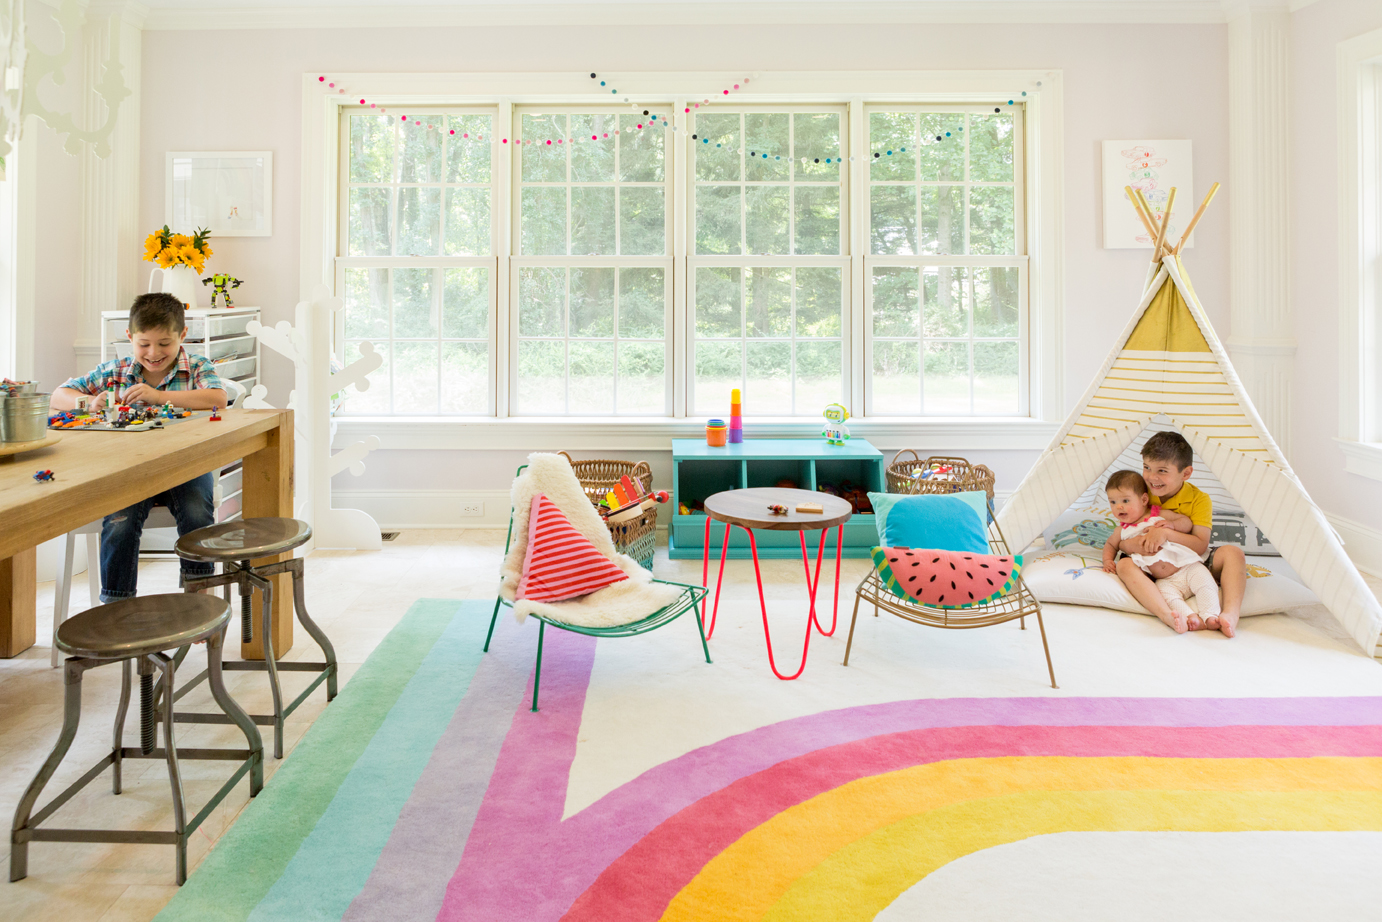 Colorful Playroom with Retro-Inspired Rug - Project Nursery